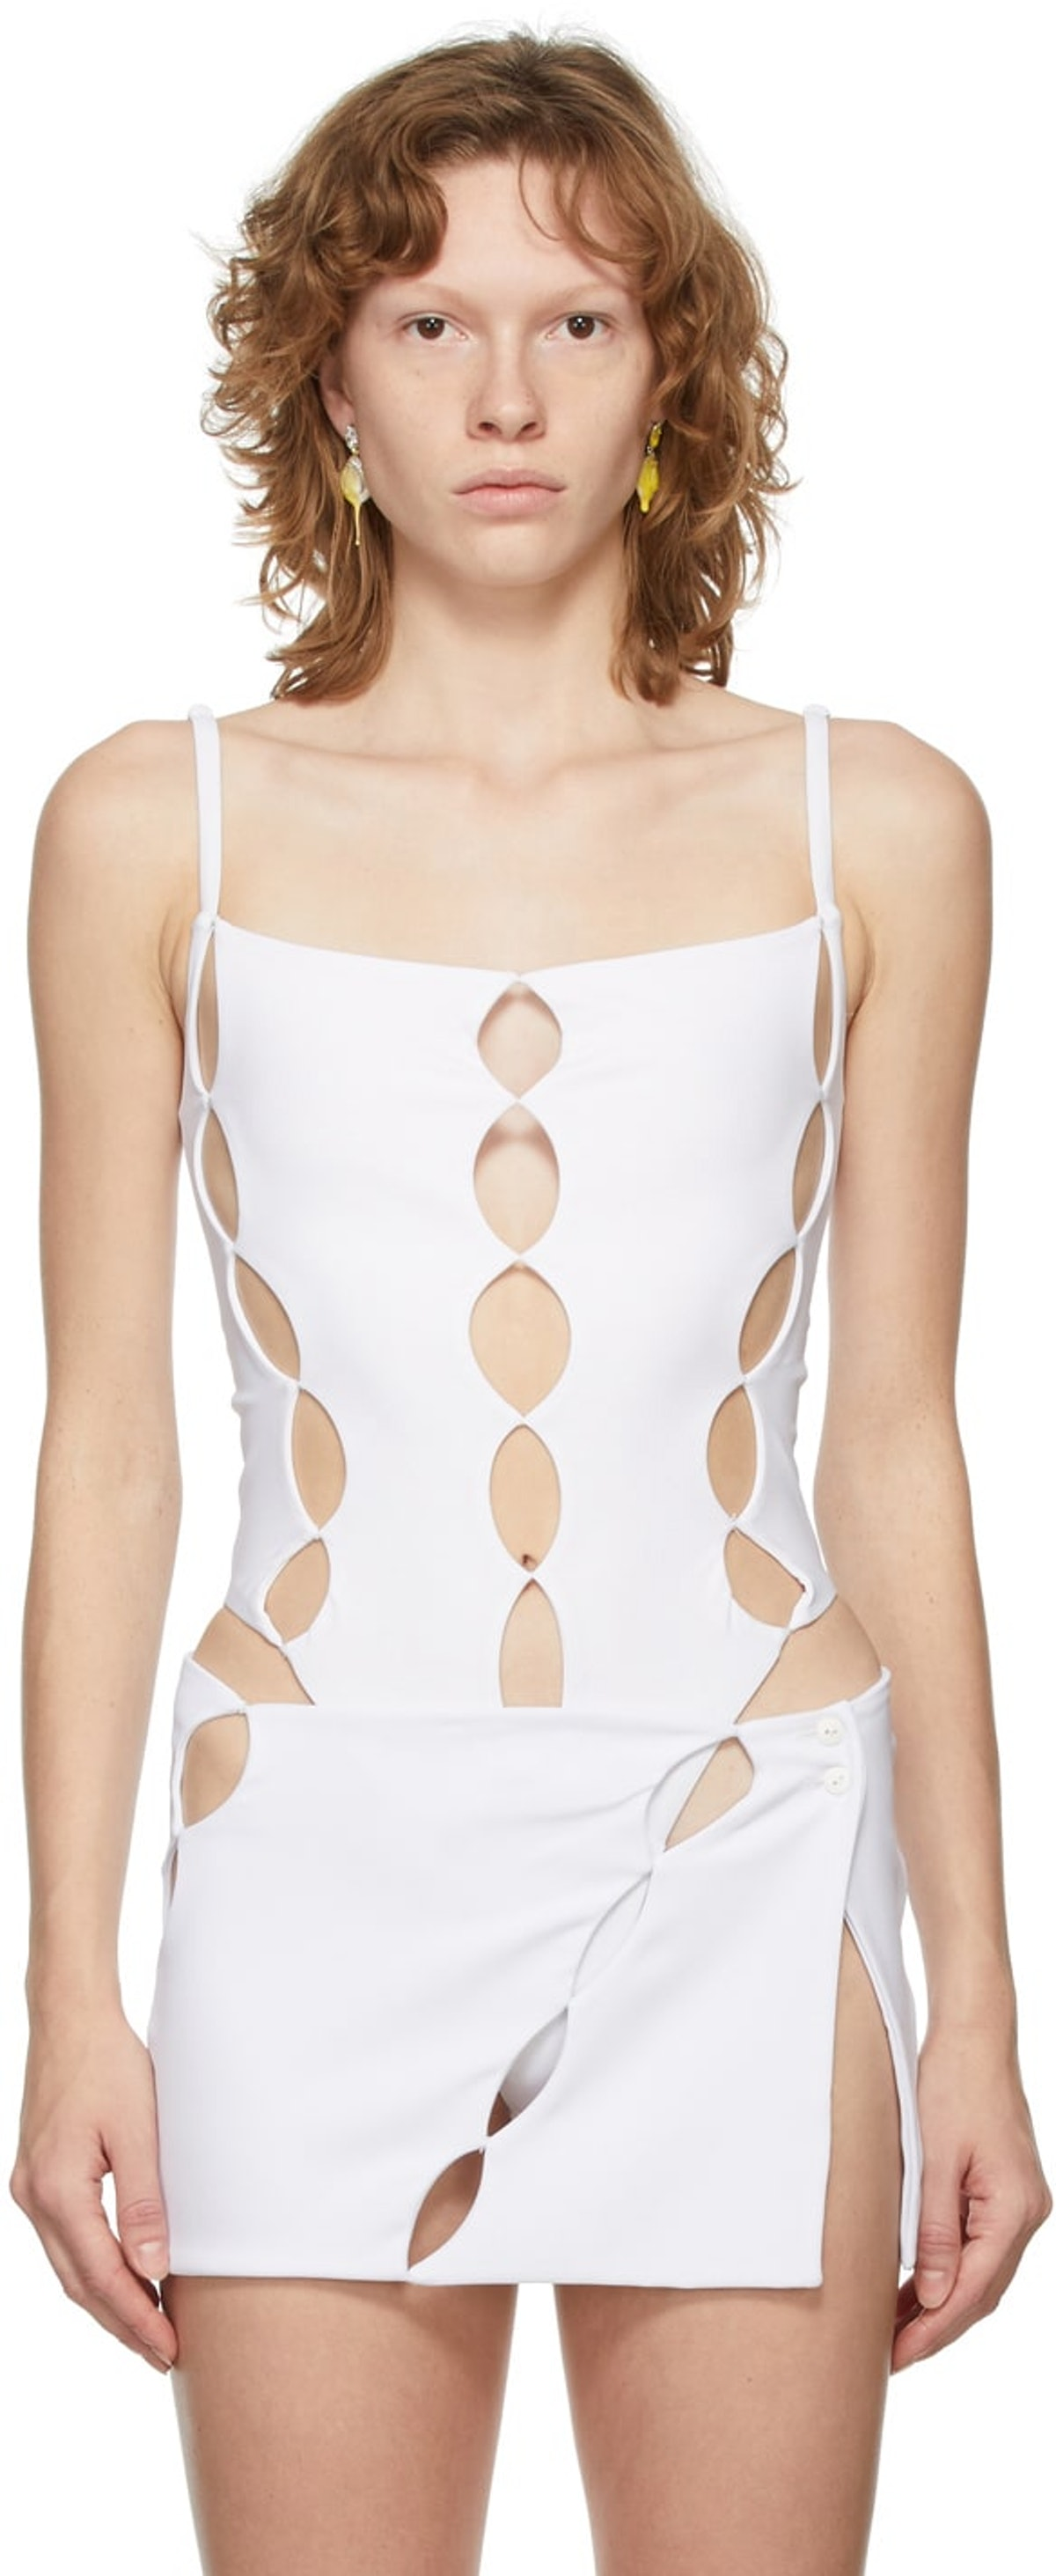 Marshall Columbia White Cut Out Bodysuit